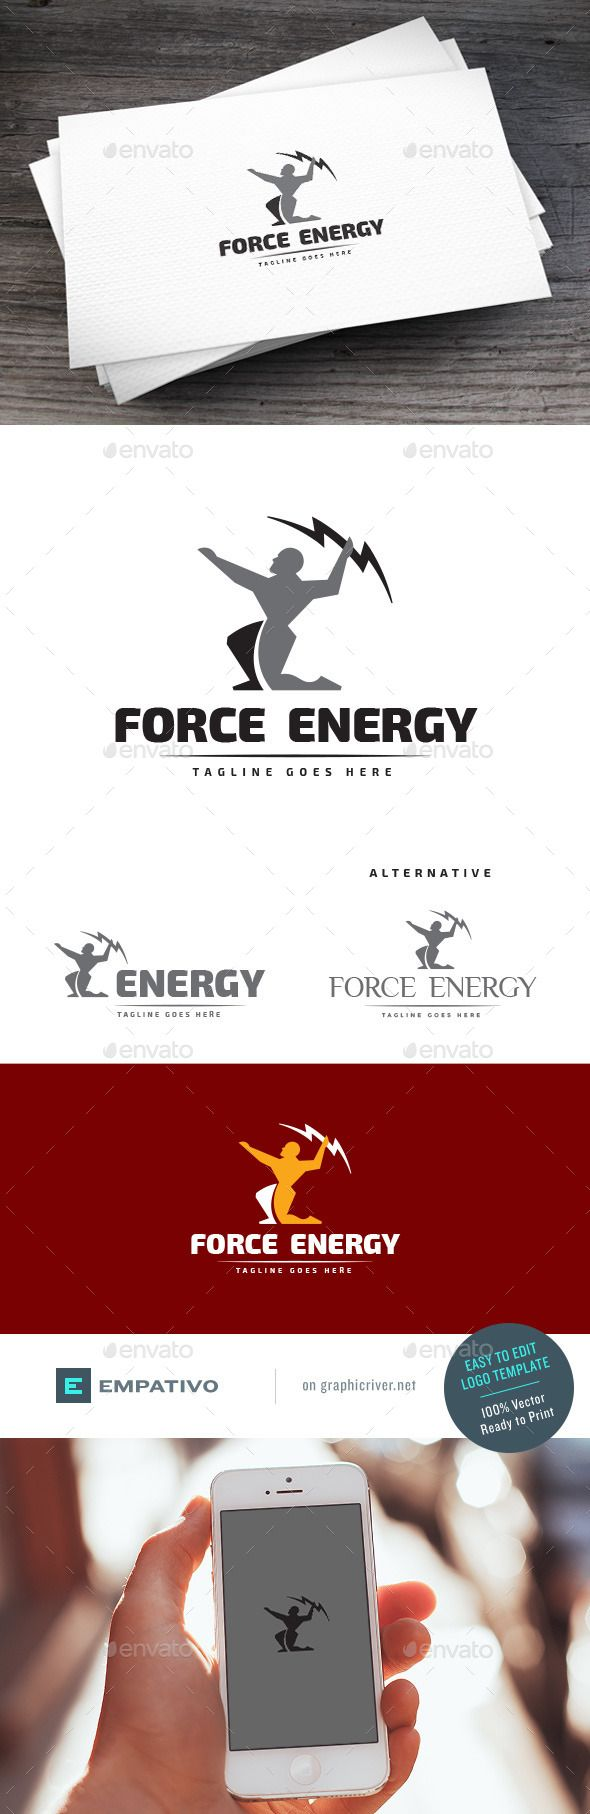 Force Energy Logo Template — Vector EPS #fitness center #shop • Available here → https://graphicriver.net/item/force-energy-logo-template/11119105?ref=pxcr